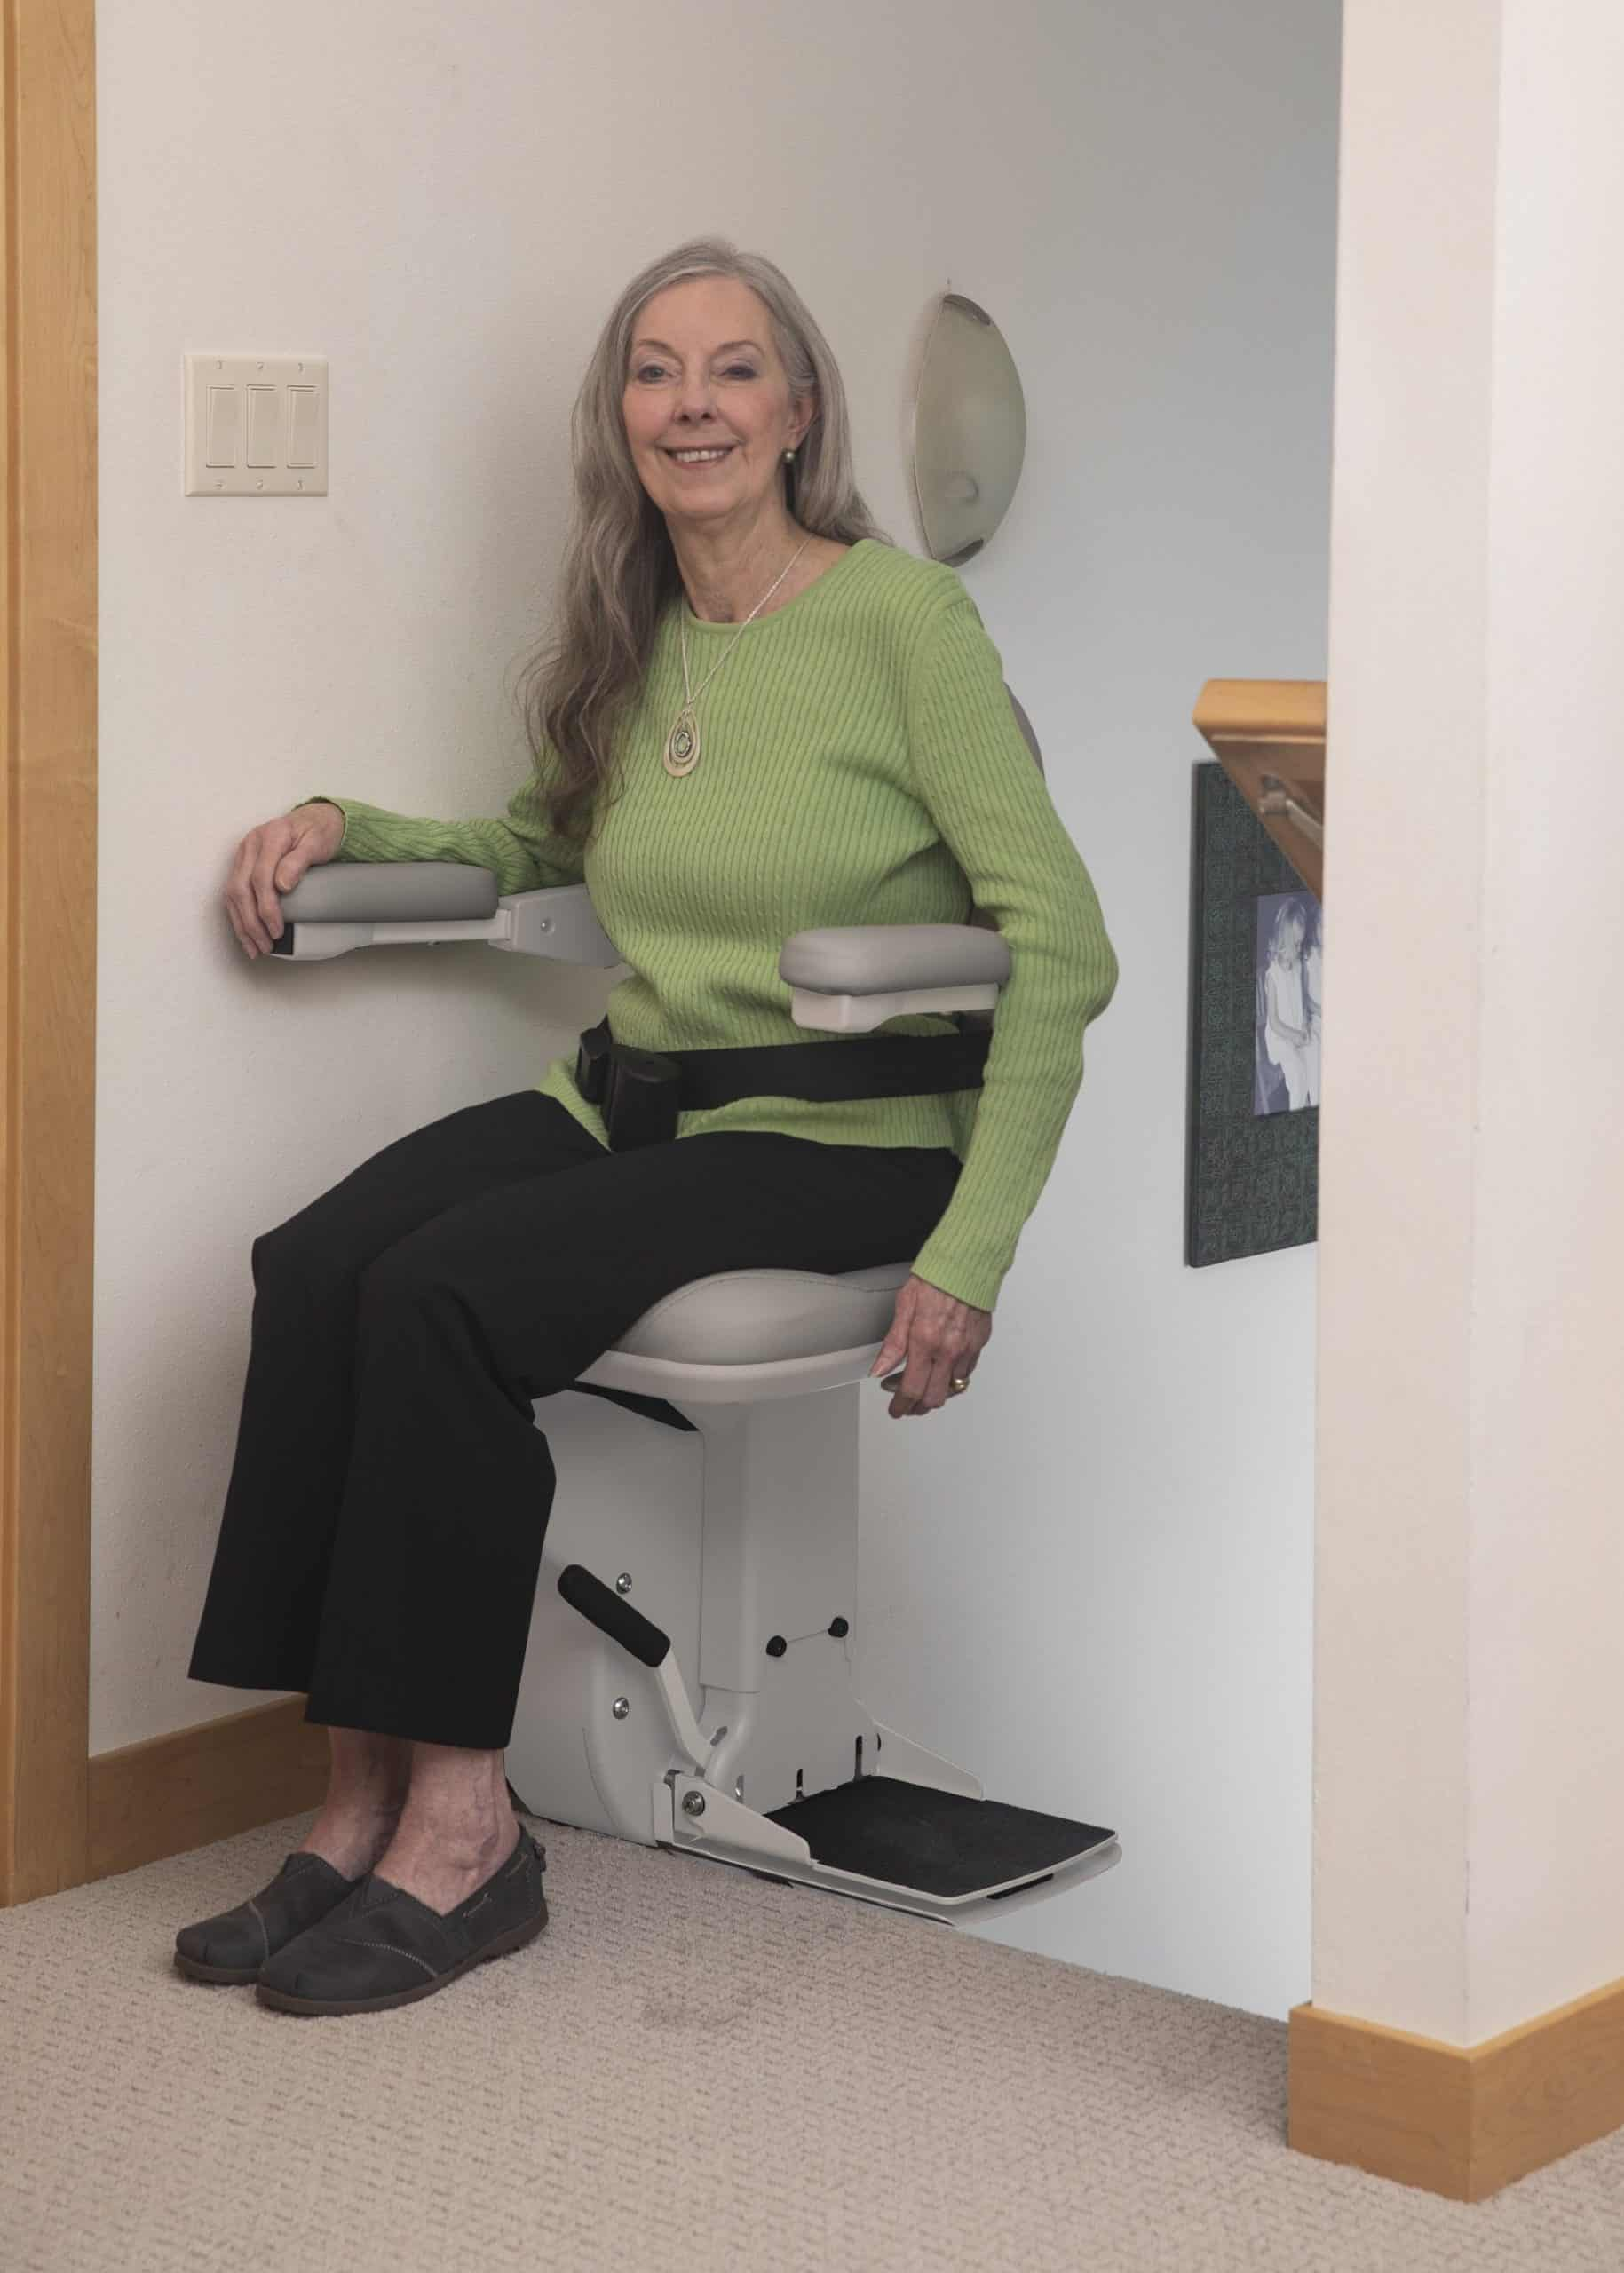 Stairlifts: A Practical Aid that you May Want to Consider